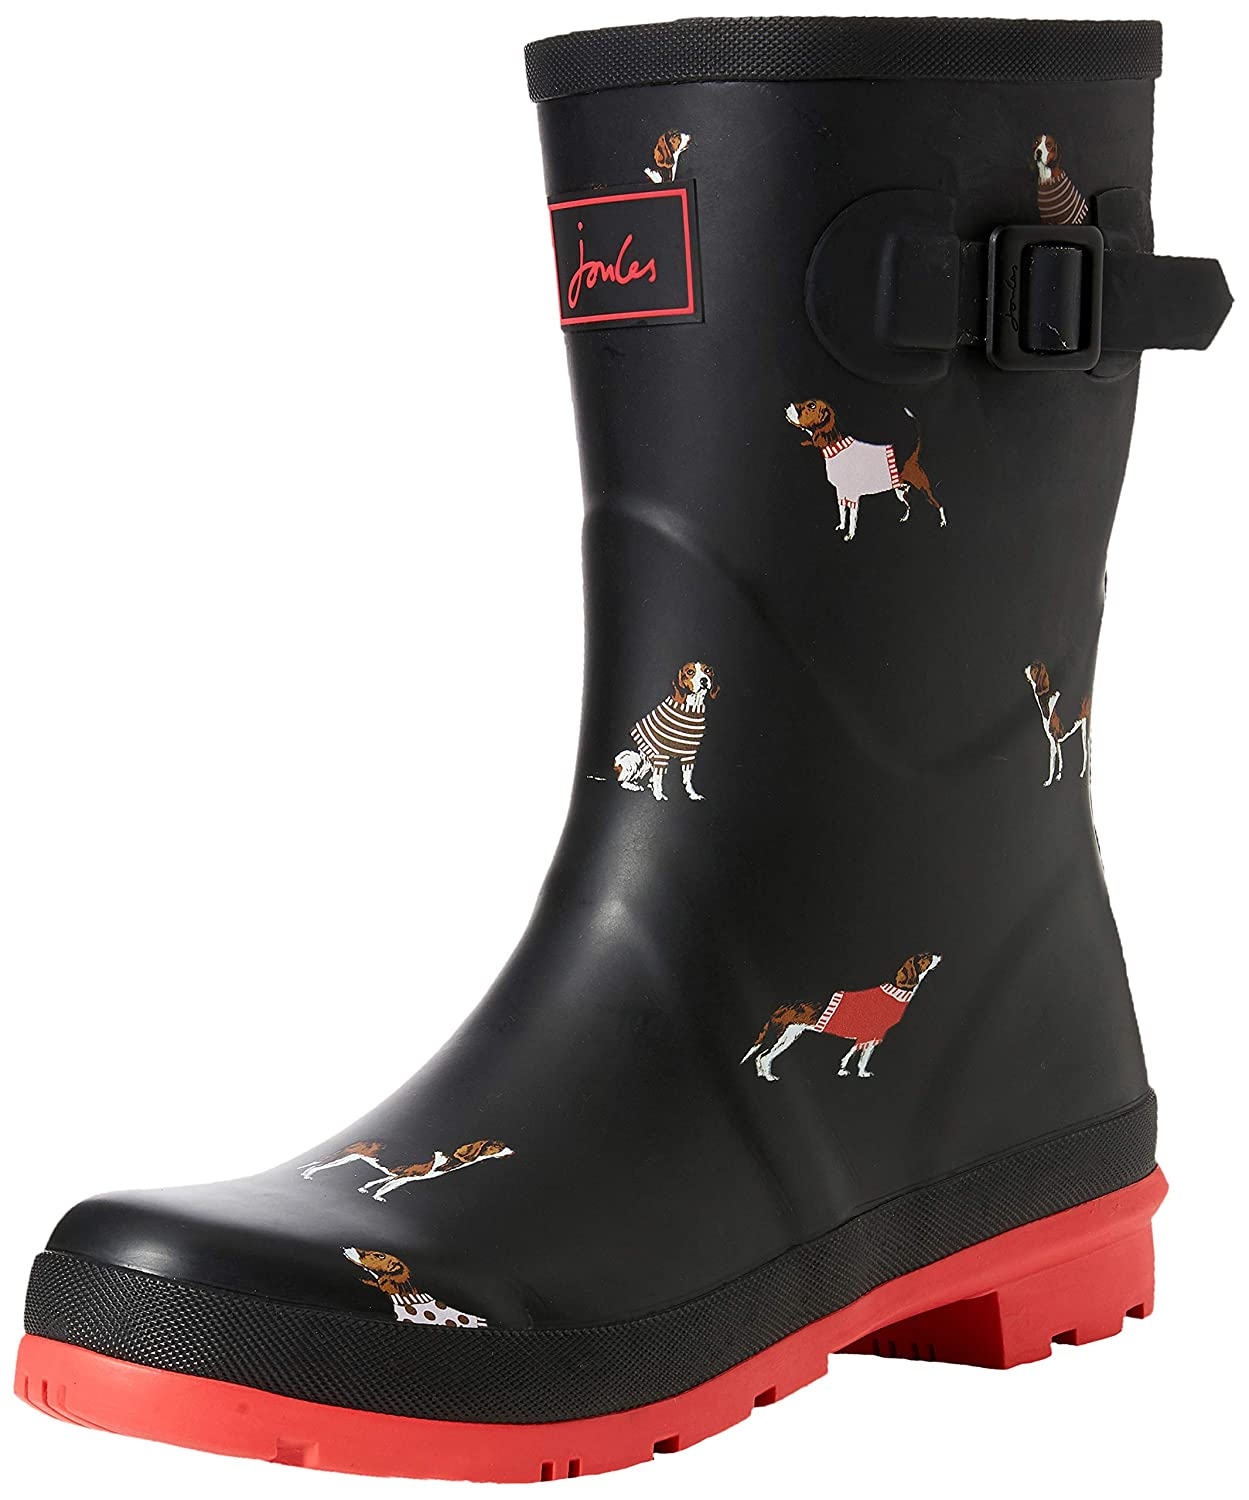 Black Jumper Dog Joules Women's Molly Welly Rain